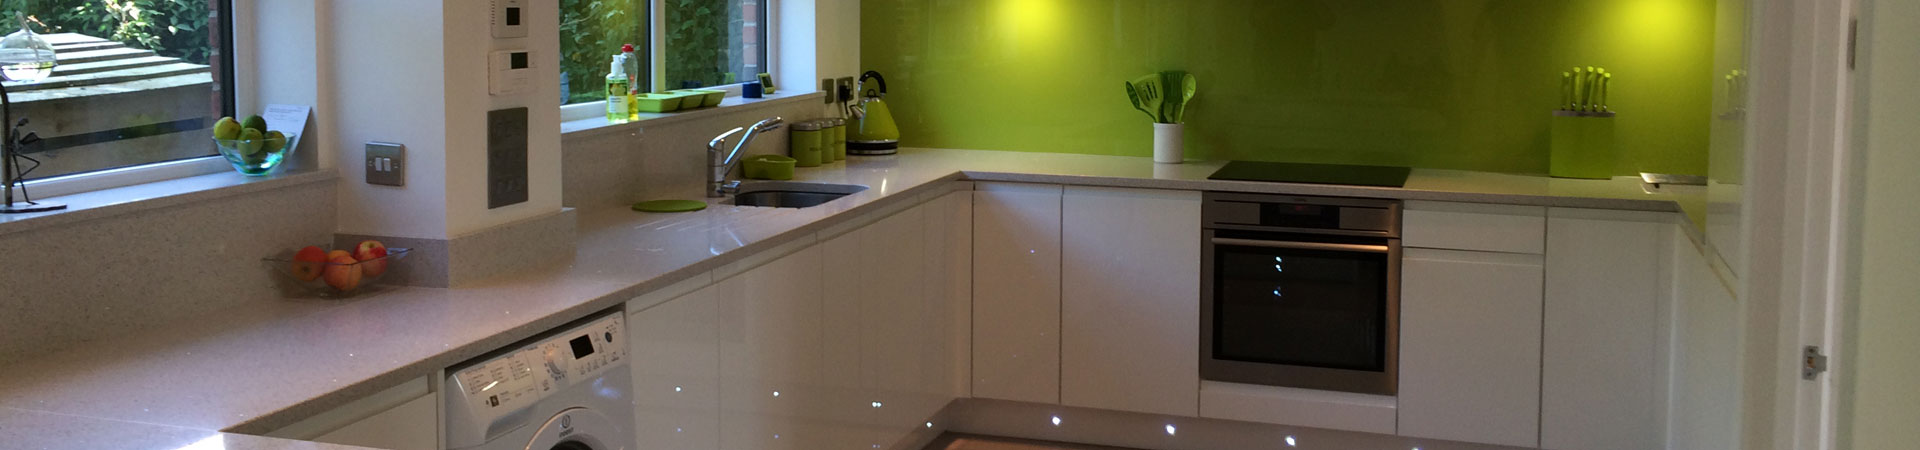 Newly refurbished green kitchen